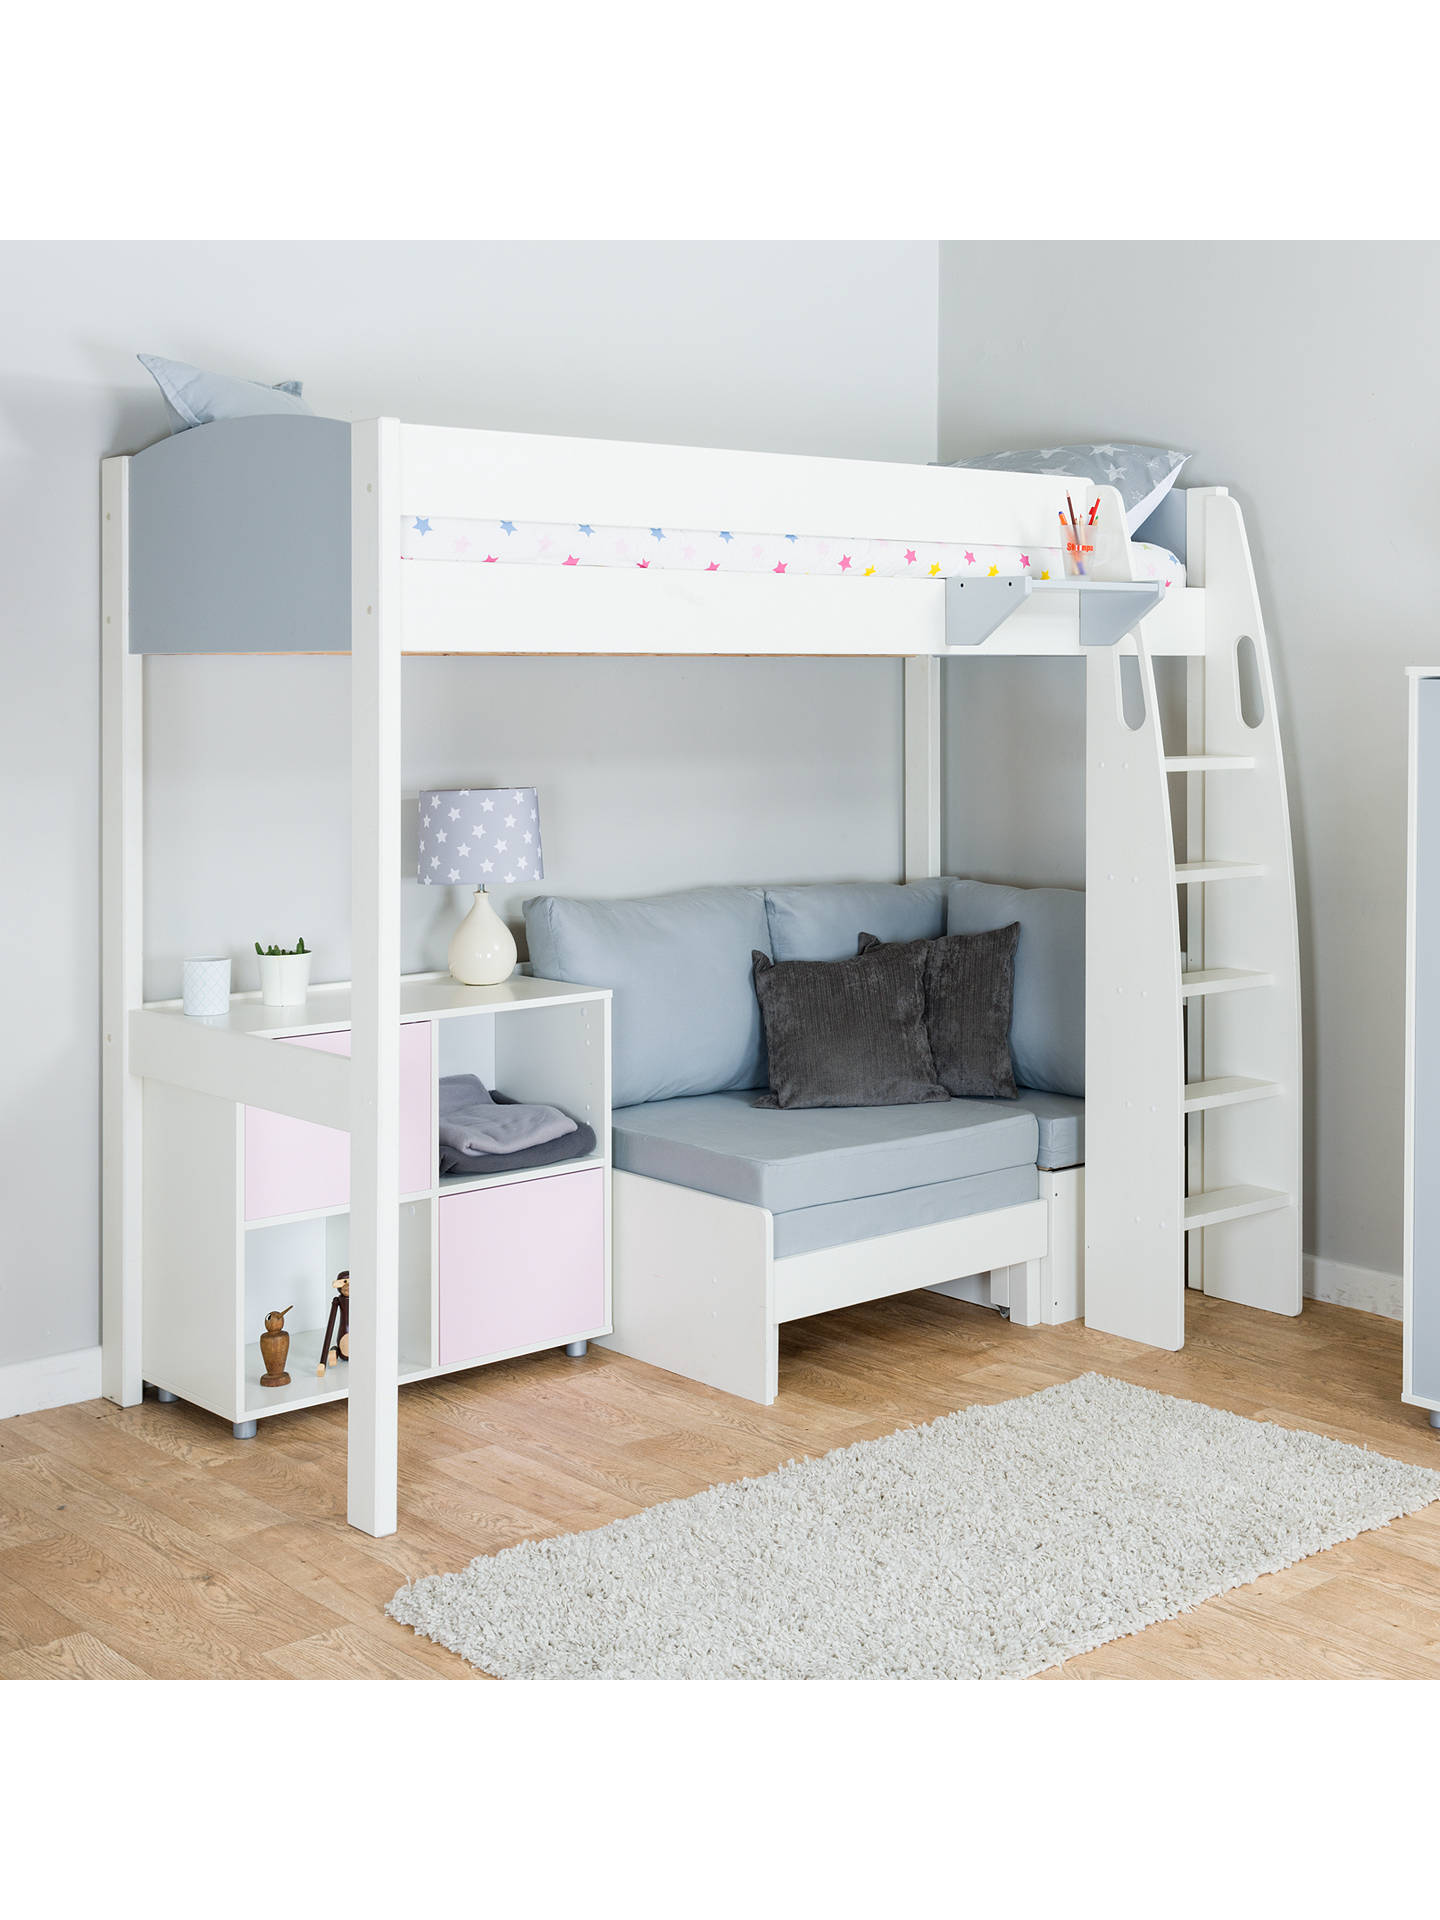 Buy Stompa Uno S Plus High-Sleeper with Grey Headboard, Grey Chair Bed and 2 Door Cube Unit, Grey/Pink Online at johnlewis.com